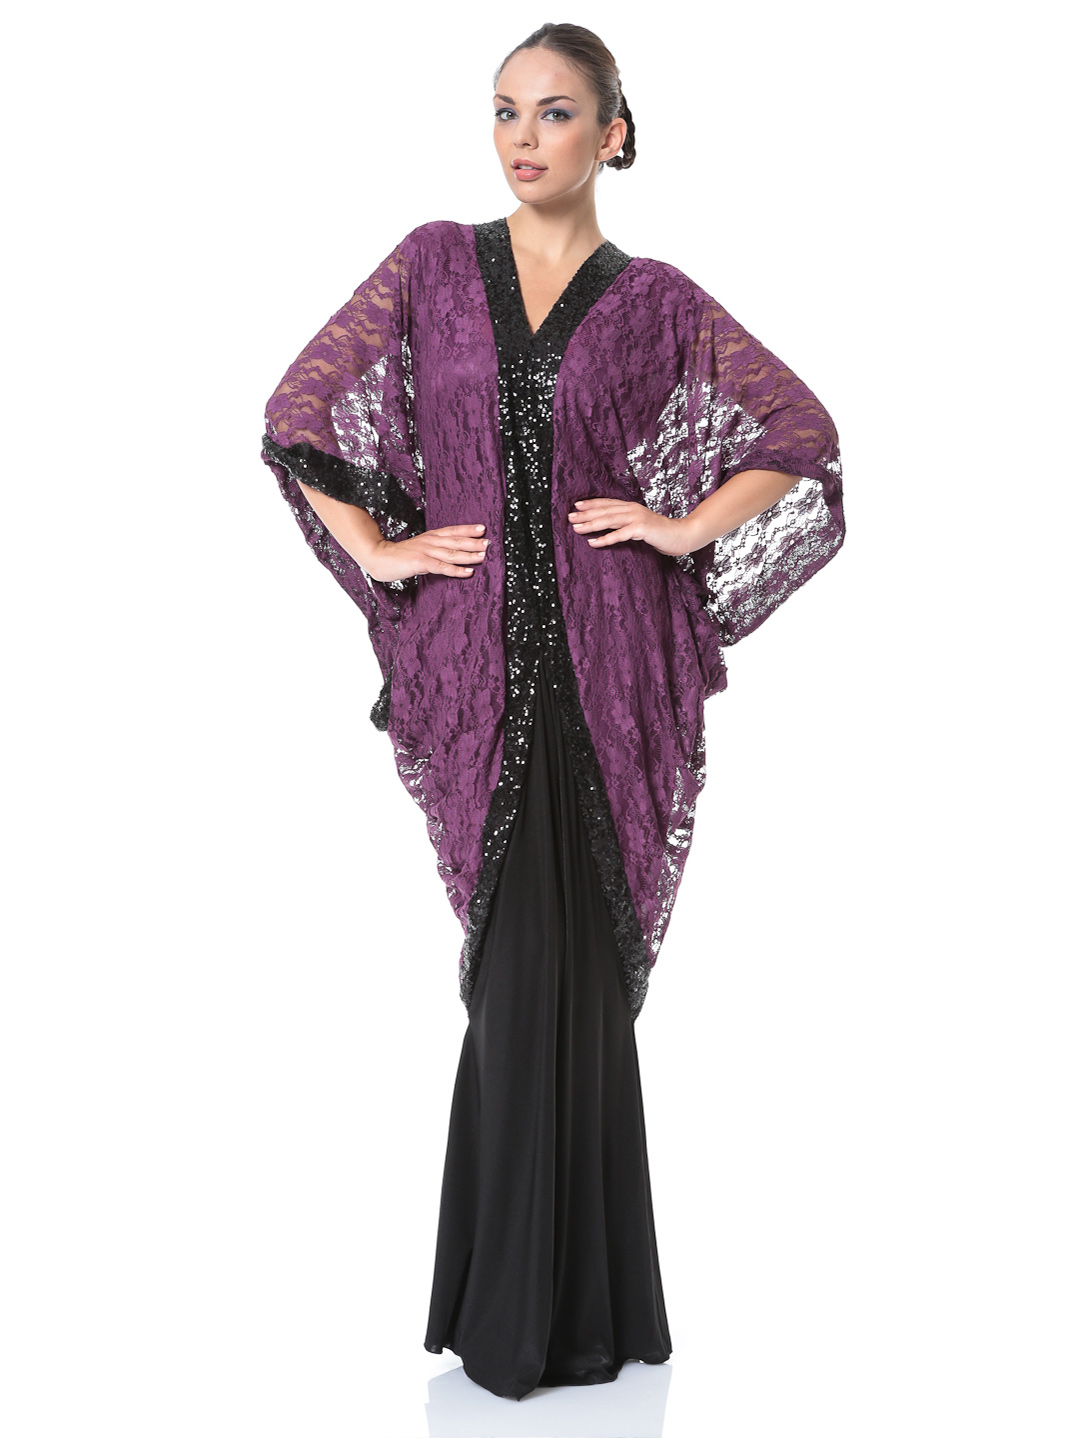 Latest Abaya Fashion in Dubai